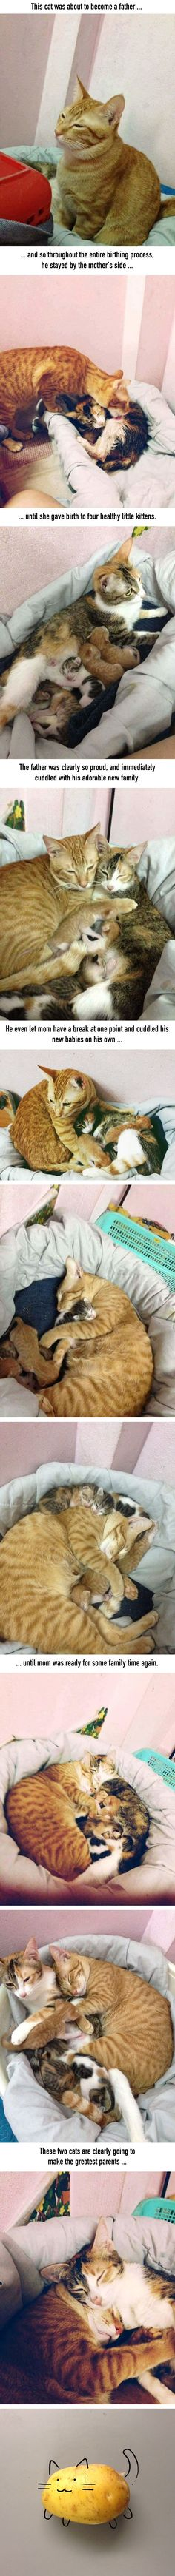 Cat dad won't leave mom's side as their kids are being born